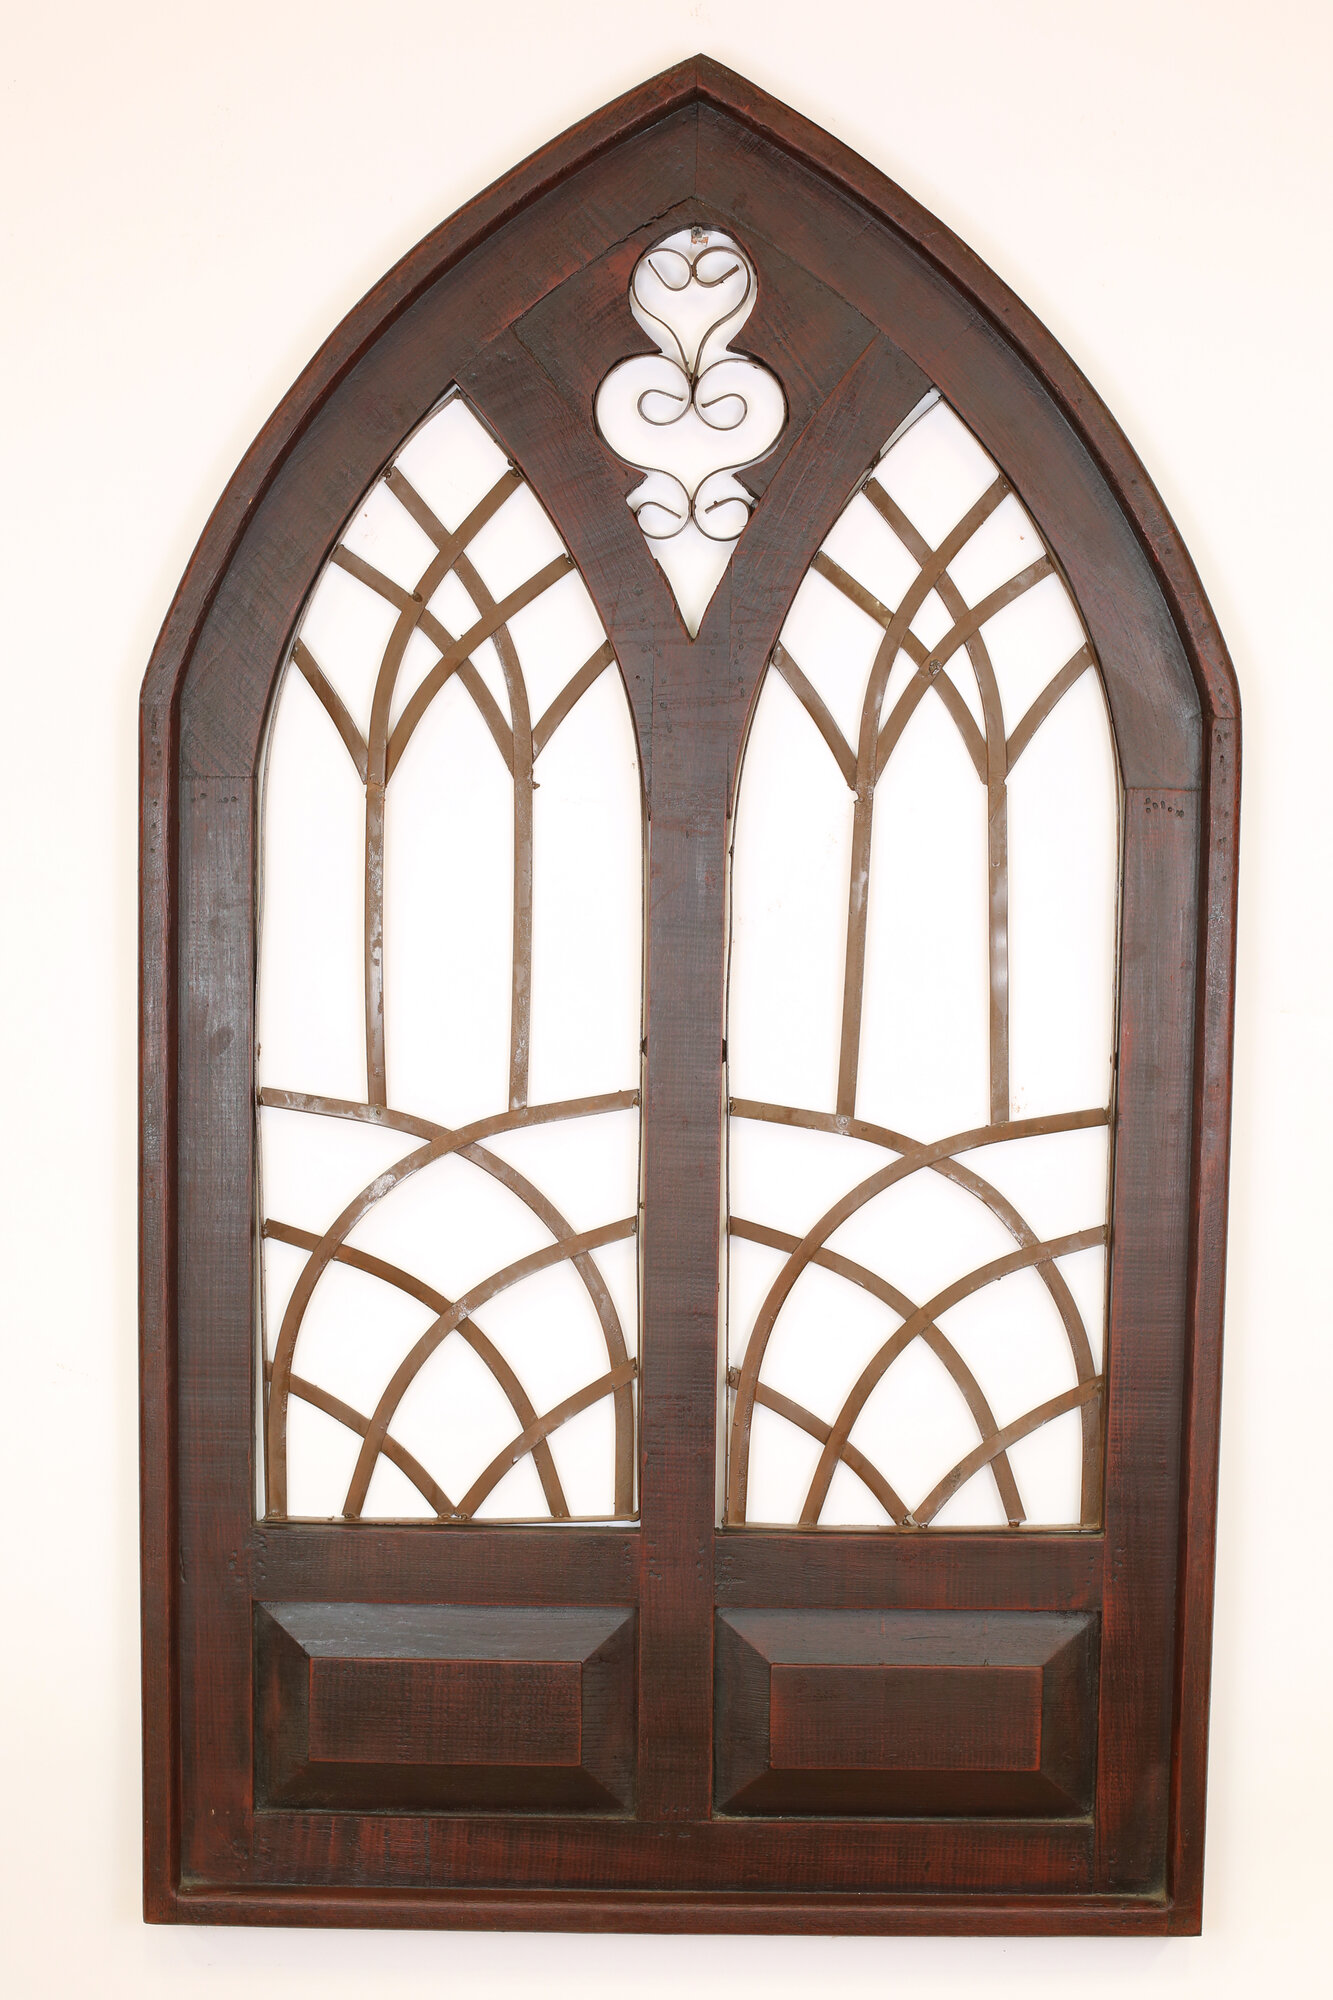 My amigos imports gothic double architectural window wall for Architectural wall mural